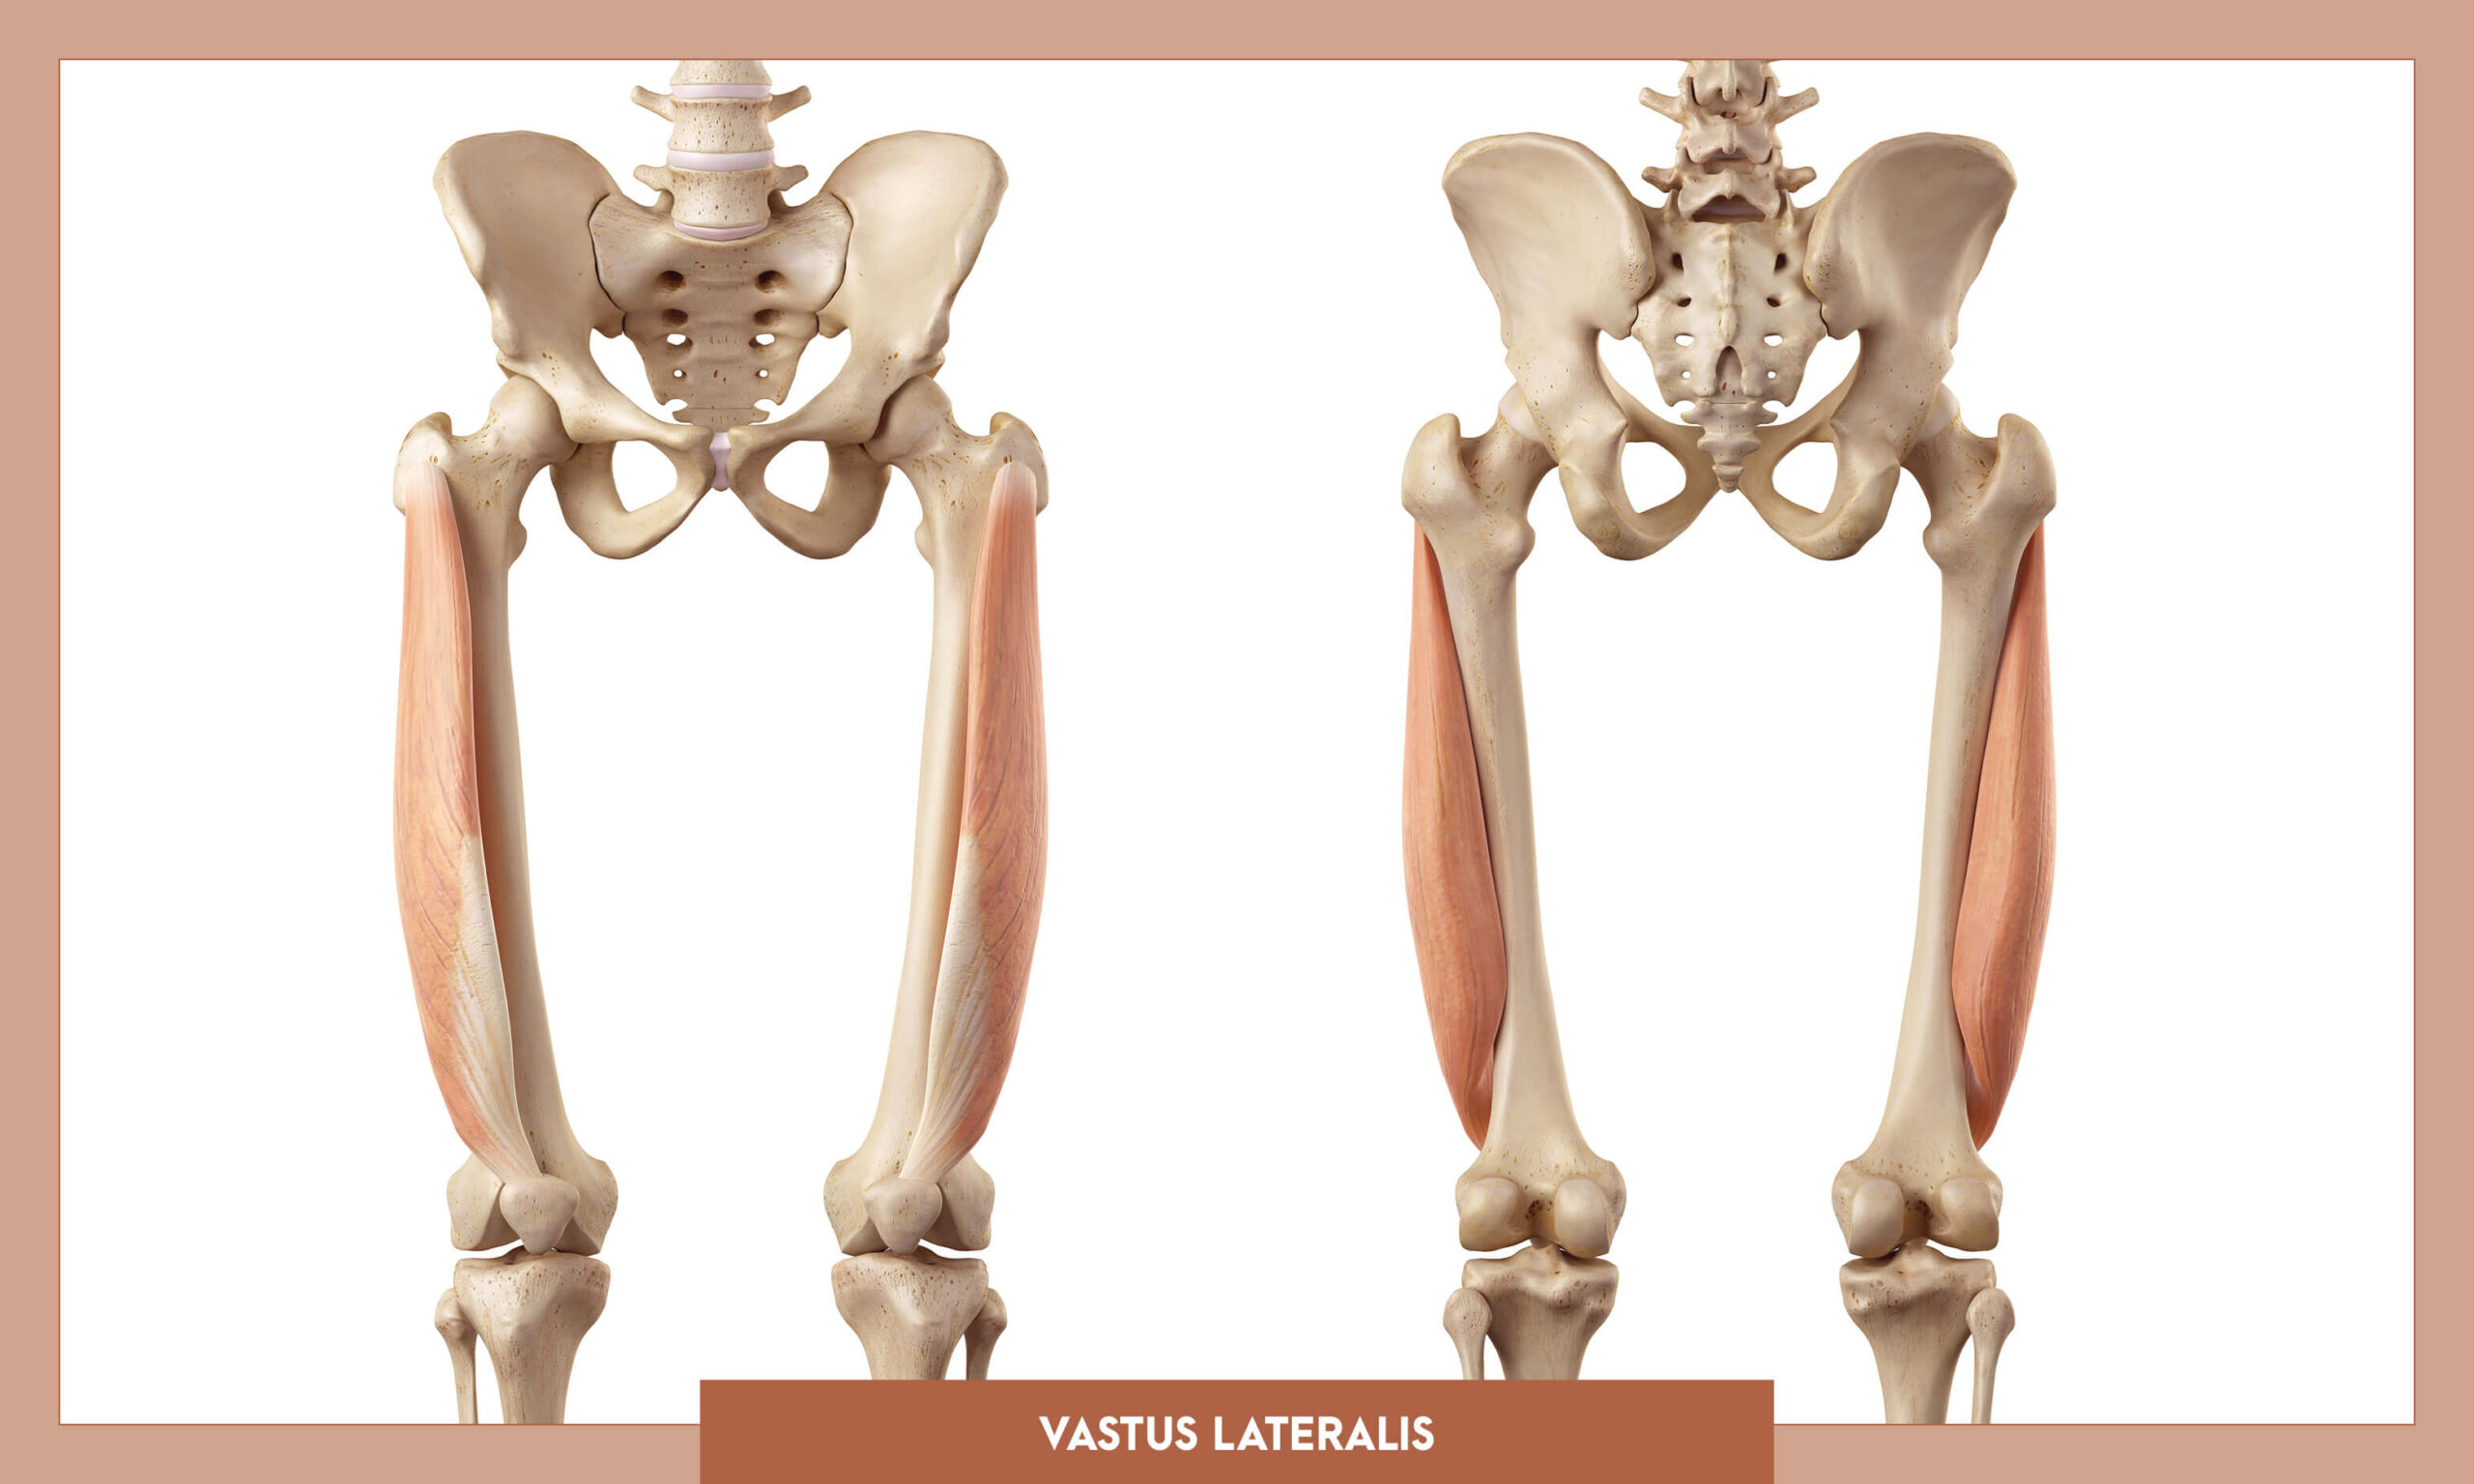 Muscles of thee Lower Limb - Vastus lateralis